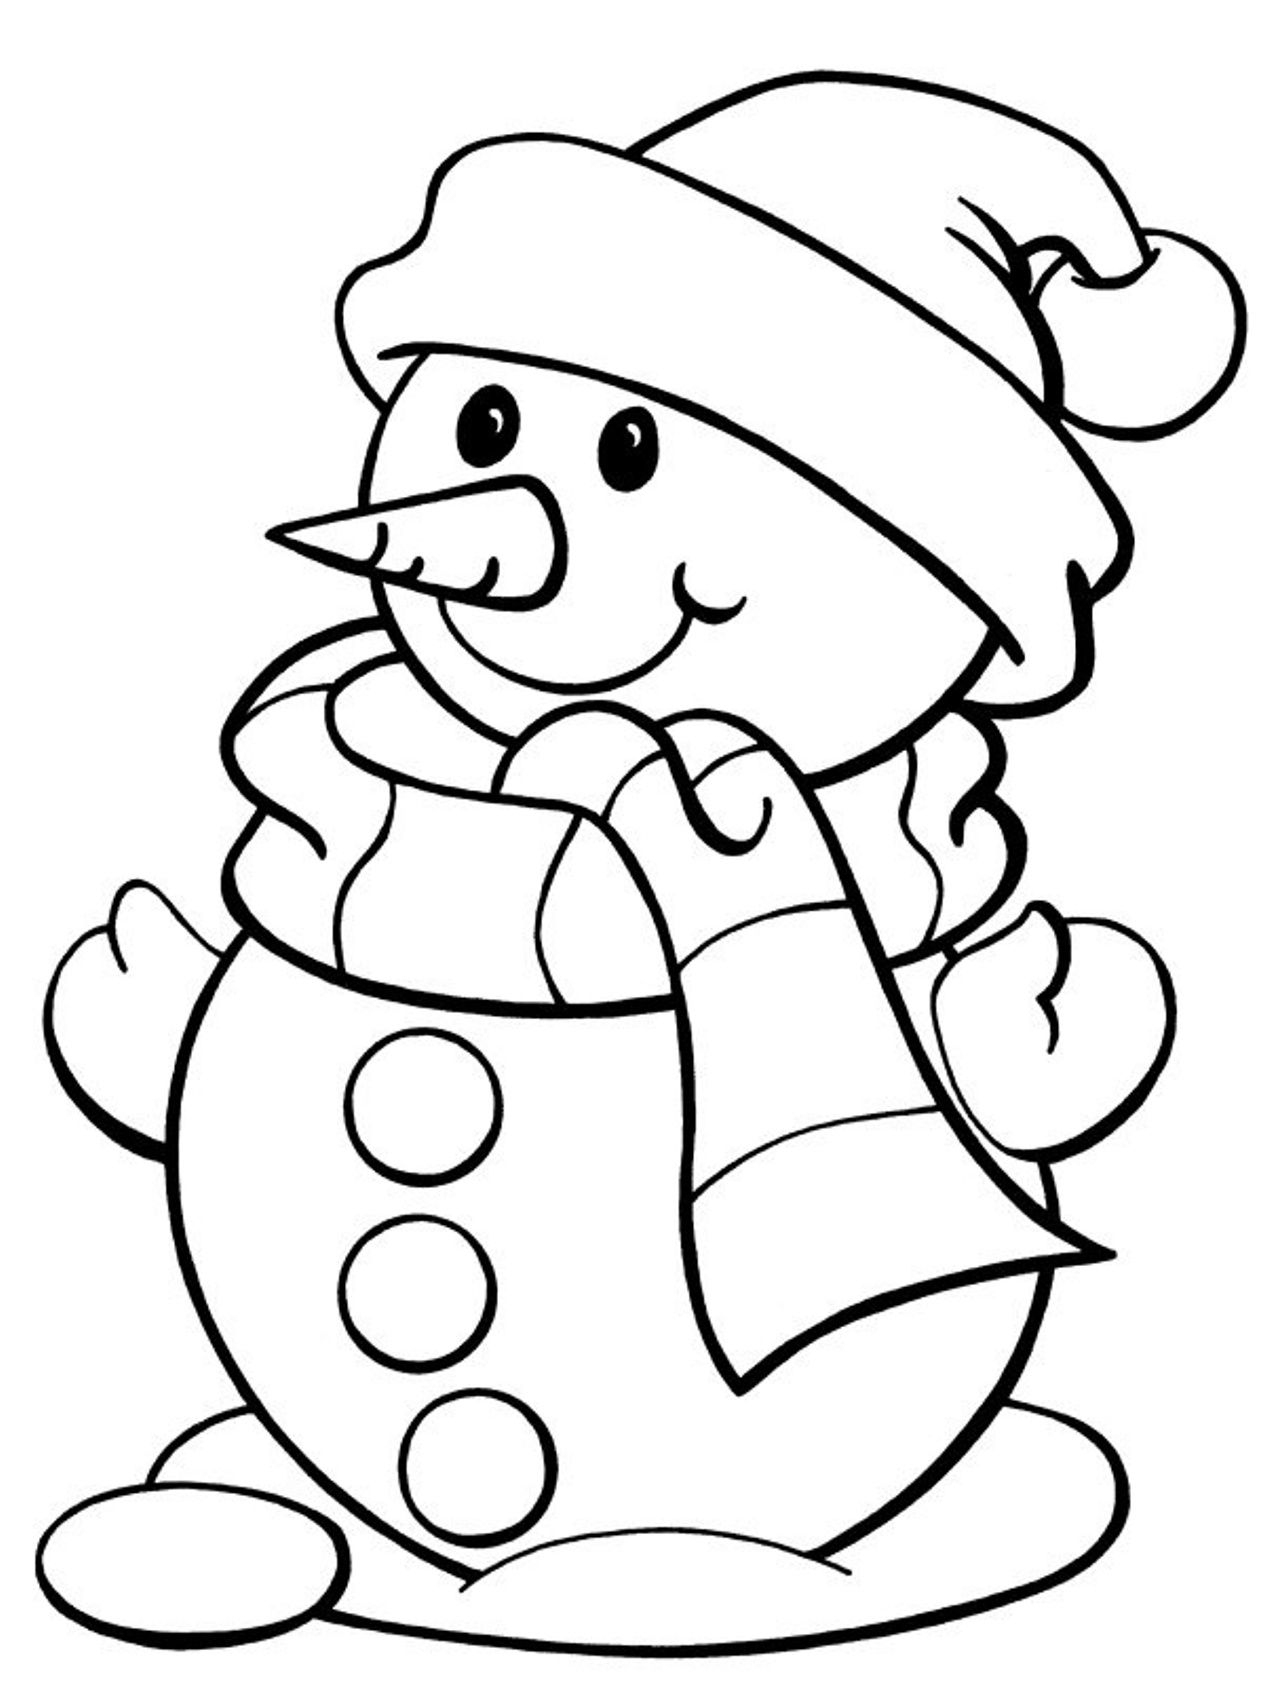 Winter Coloring Pages - Google Search   Winter Party   Christmas - Free Printable Winter Coloring Pages